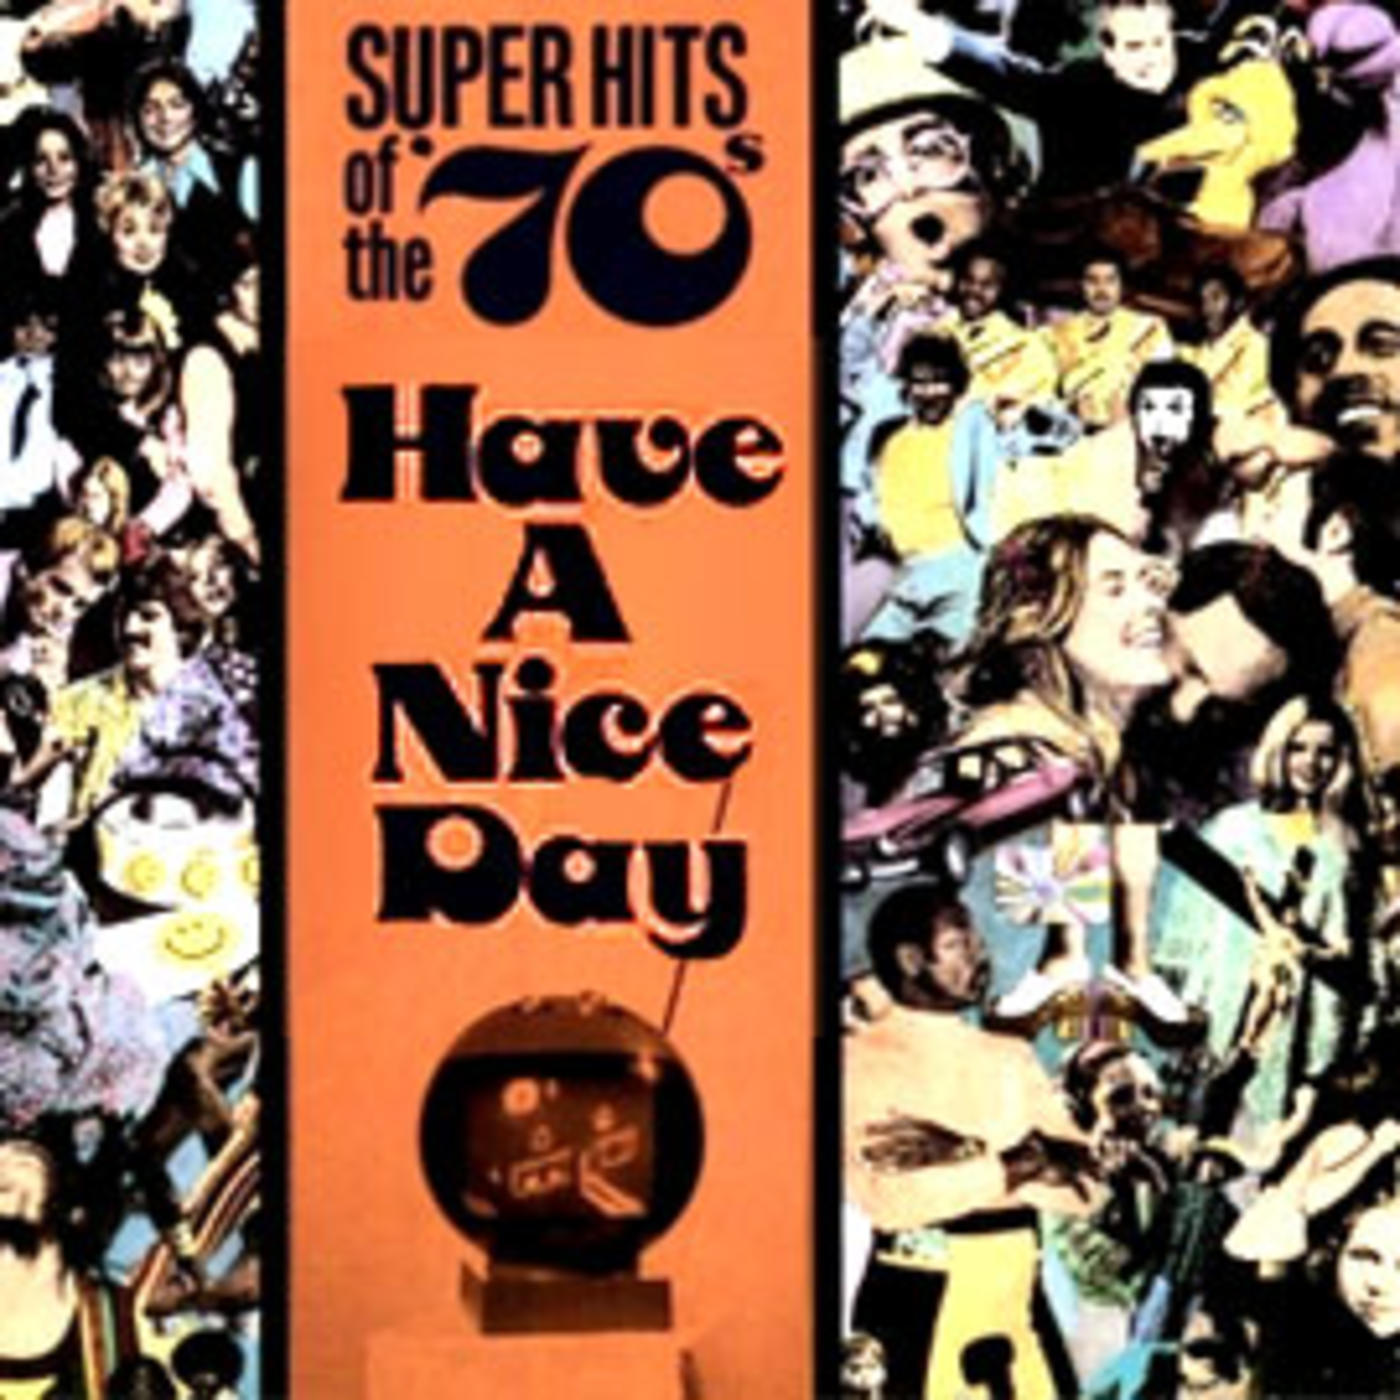 Have A Nice Day - The 70s - Canned Heat, Malo, Ray Price, Bloodstone, Brewer, Shipley, Archie Bell & The Drells, Timmy Thomas, Christie, Clarence Carter, George McCrae, Wadsworth Mansion